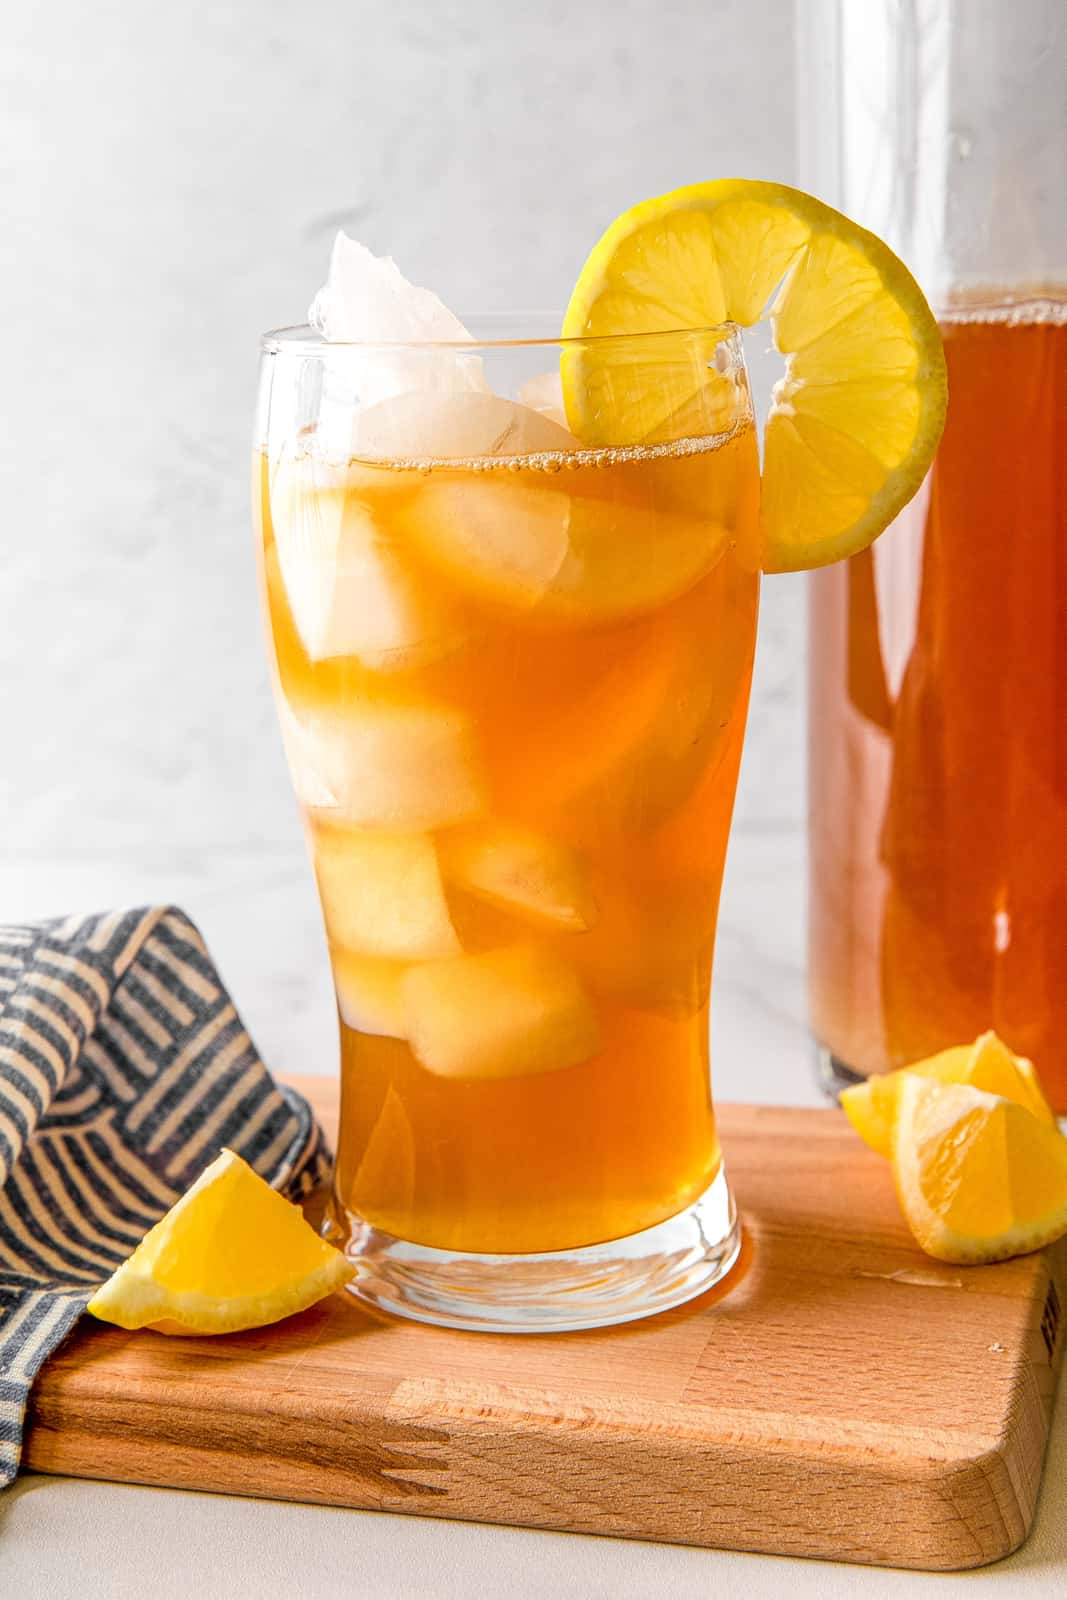 Close up of one Arnold Palmer Drink with lemon and pitcher in background